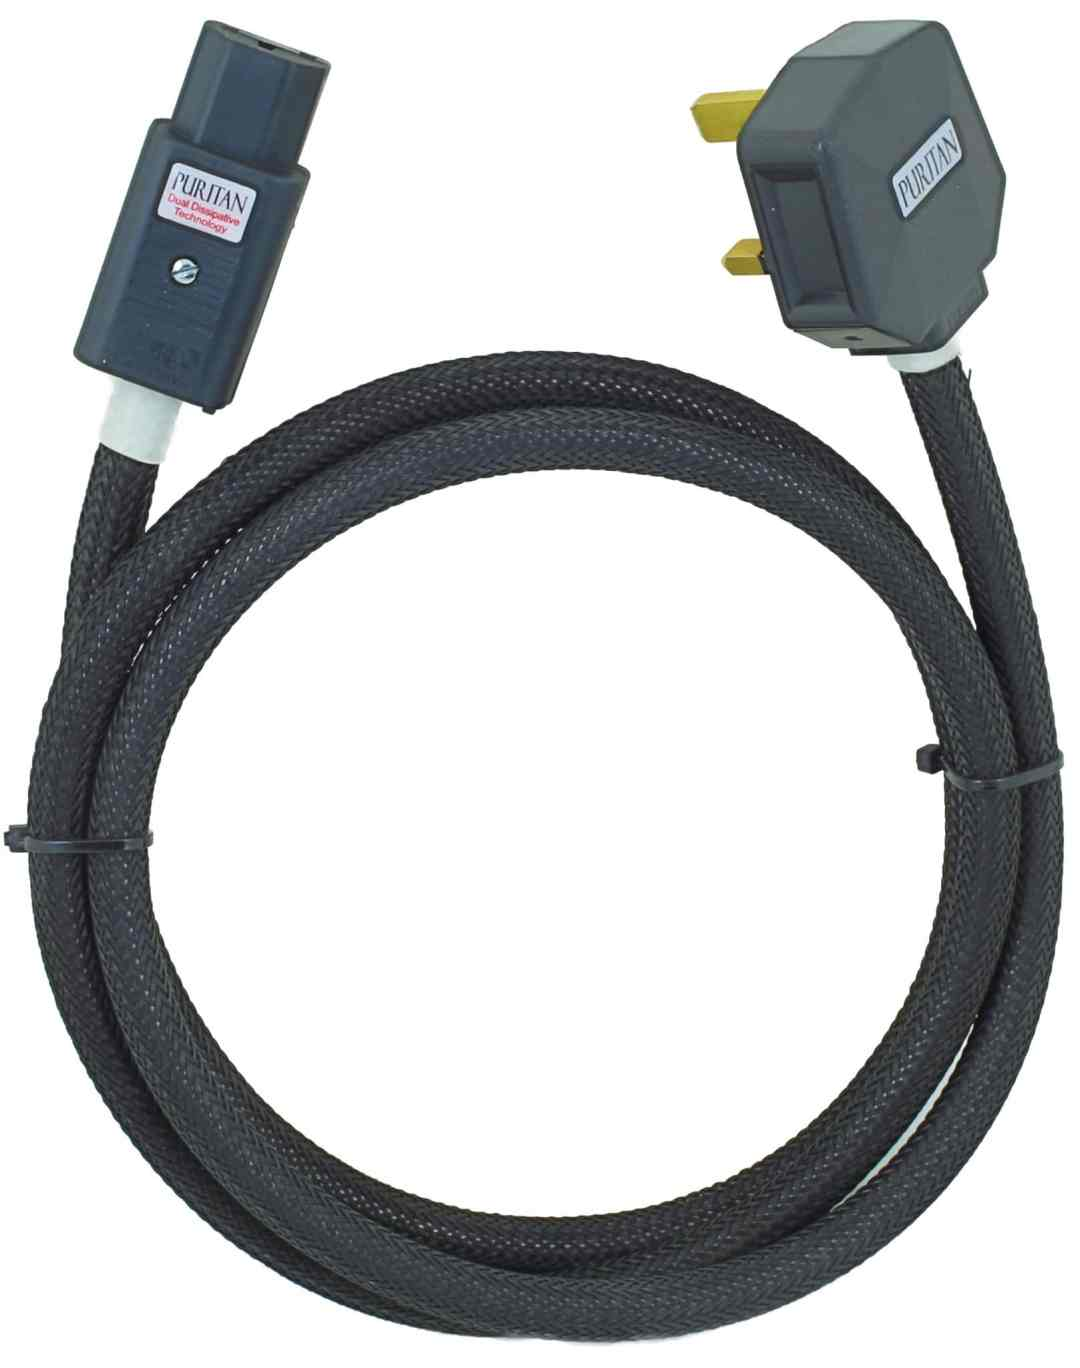 6-dual-dissipative-mains-cable